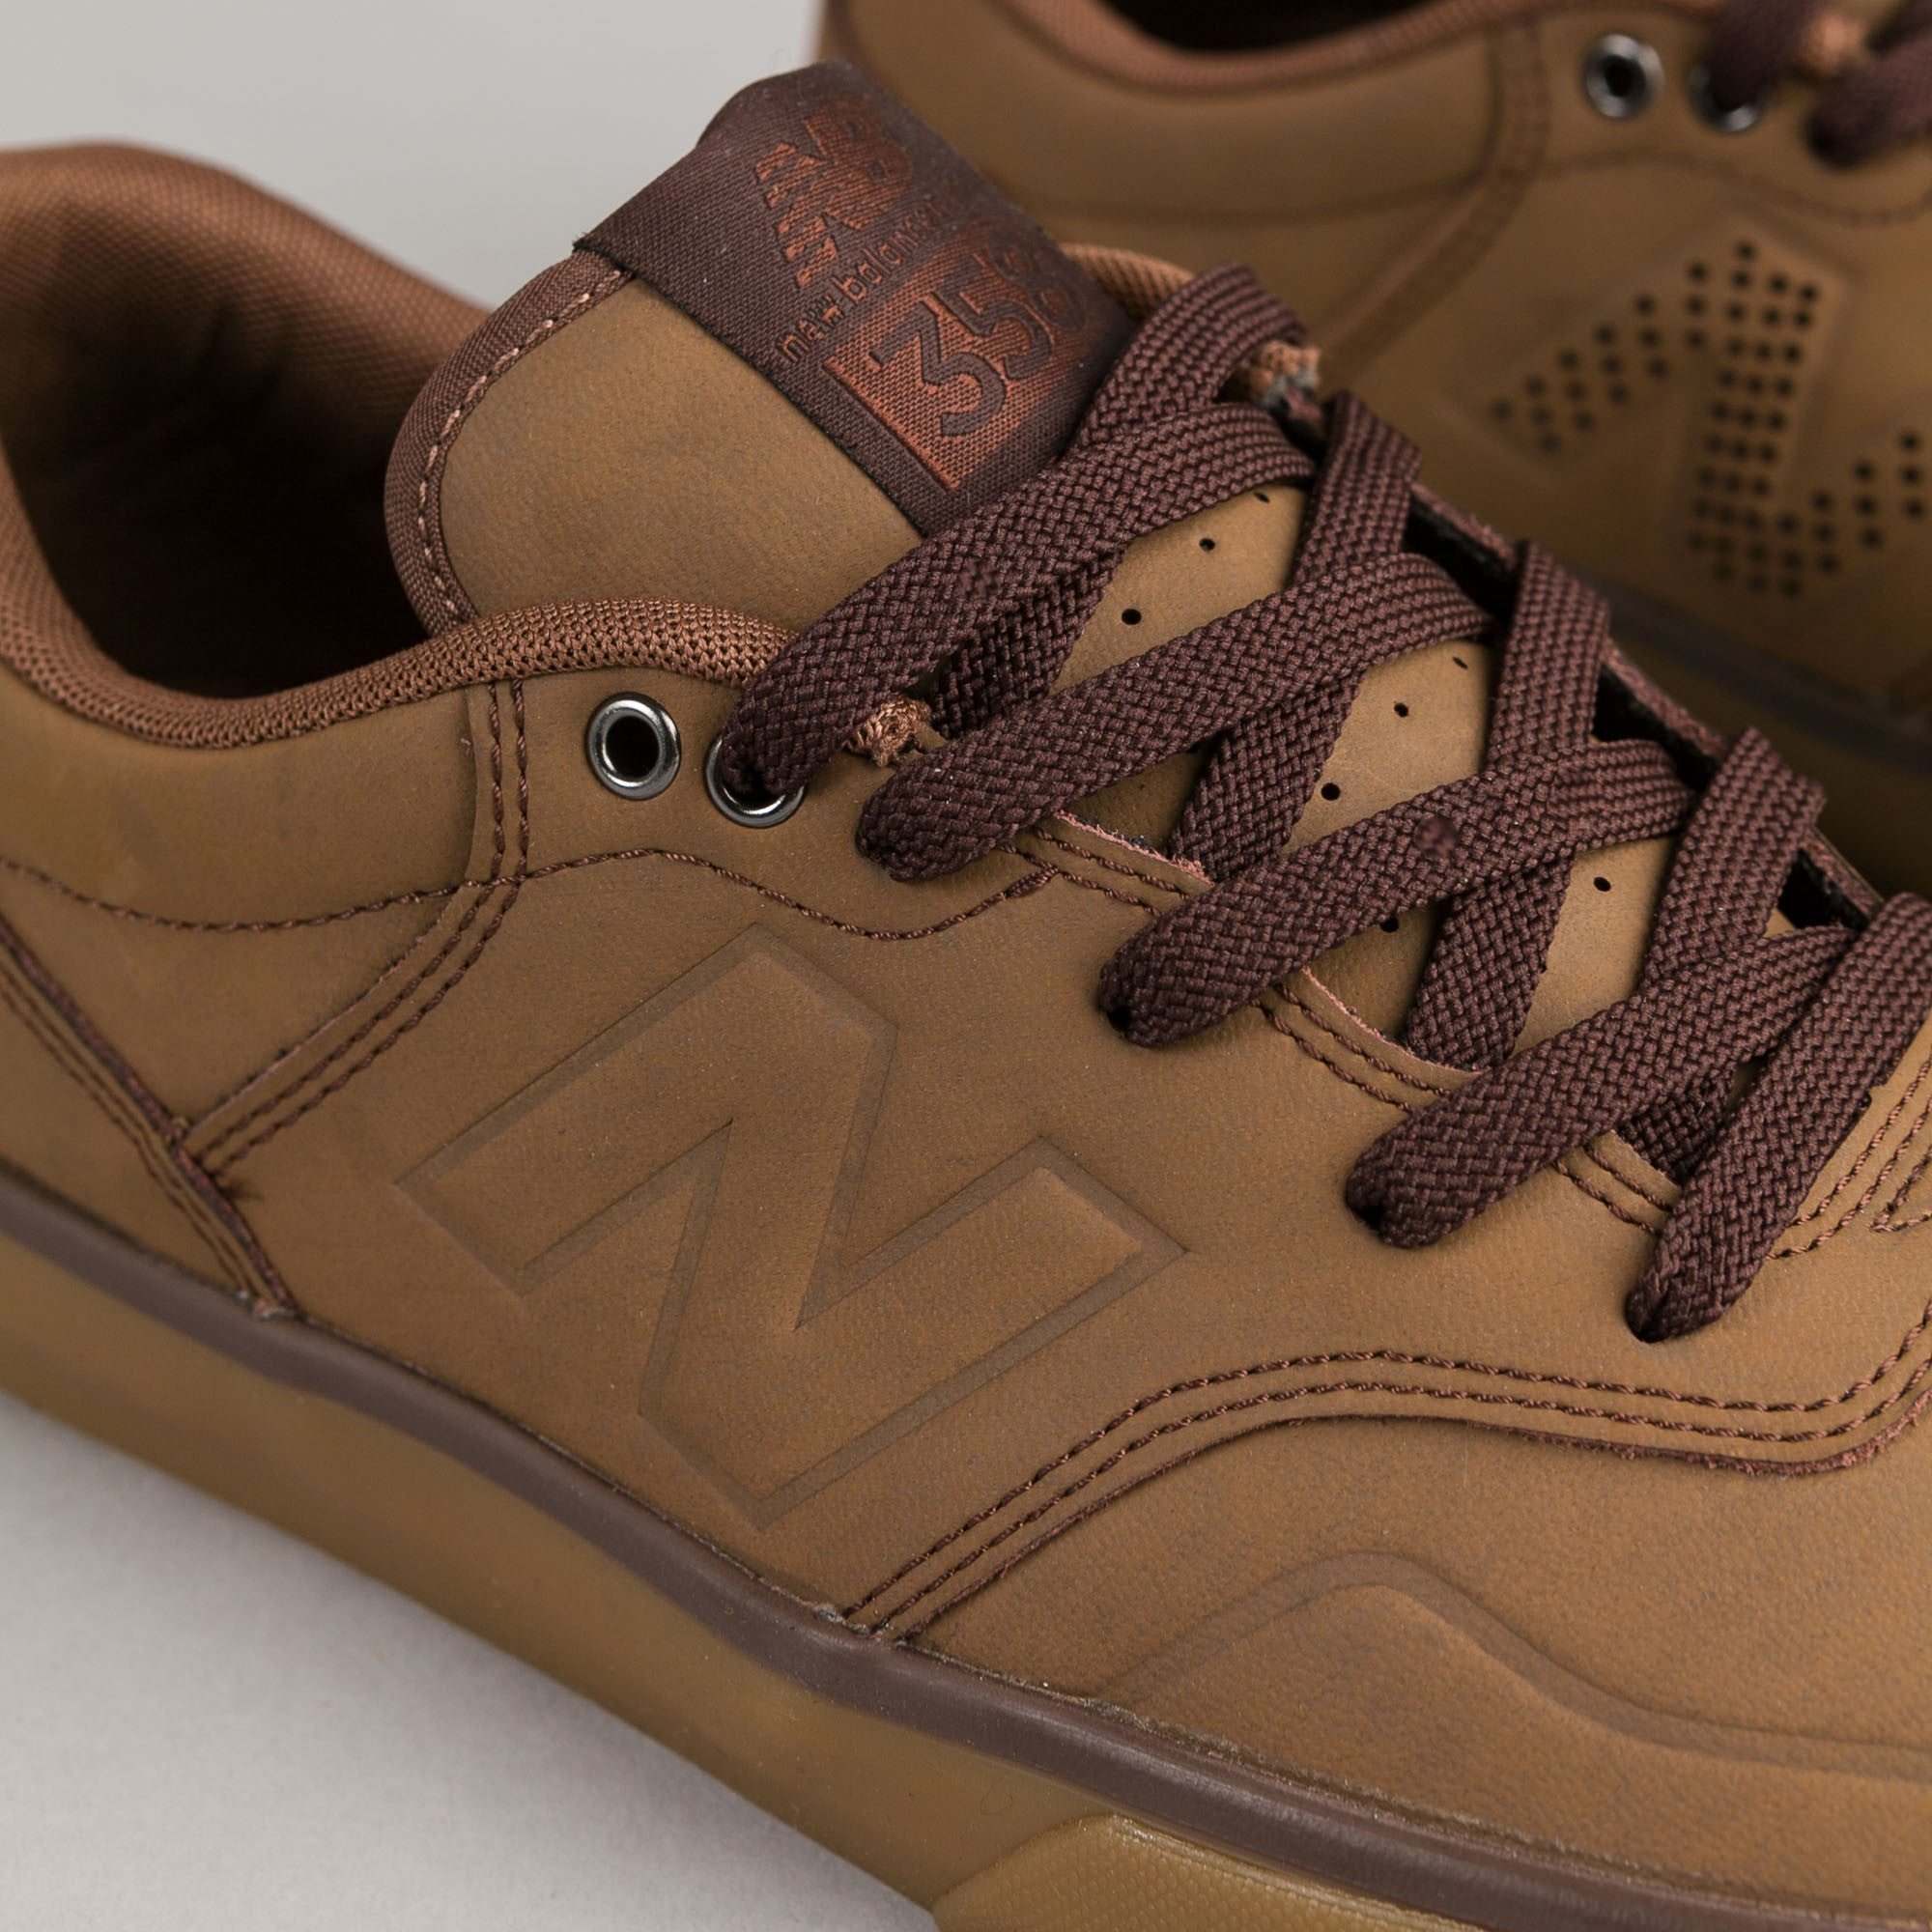 New Balance Numeric Arto 358 Shoes - Saddle Gum